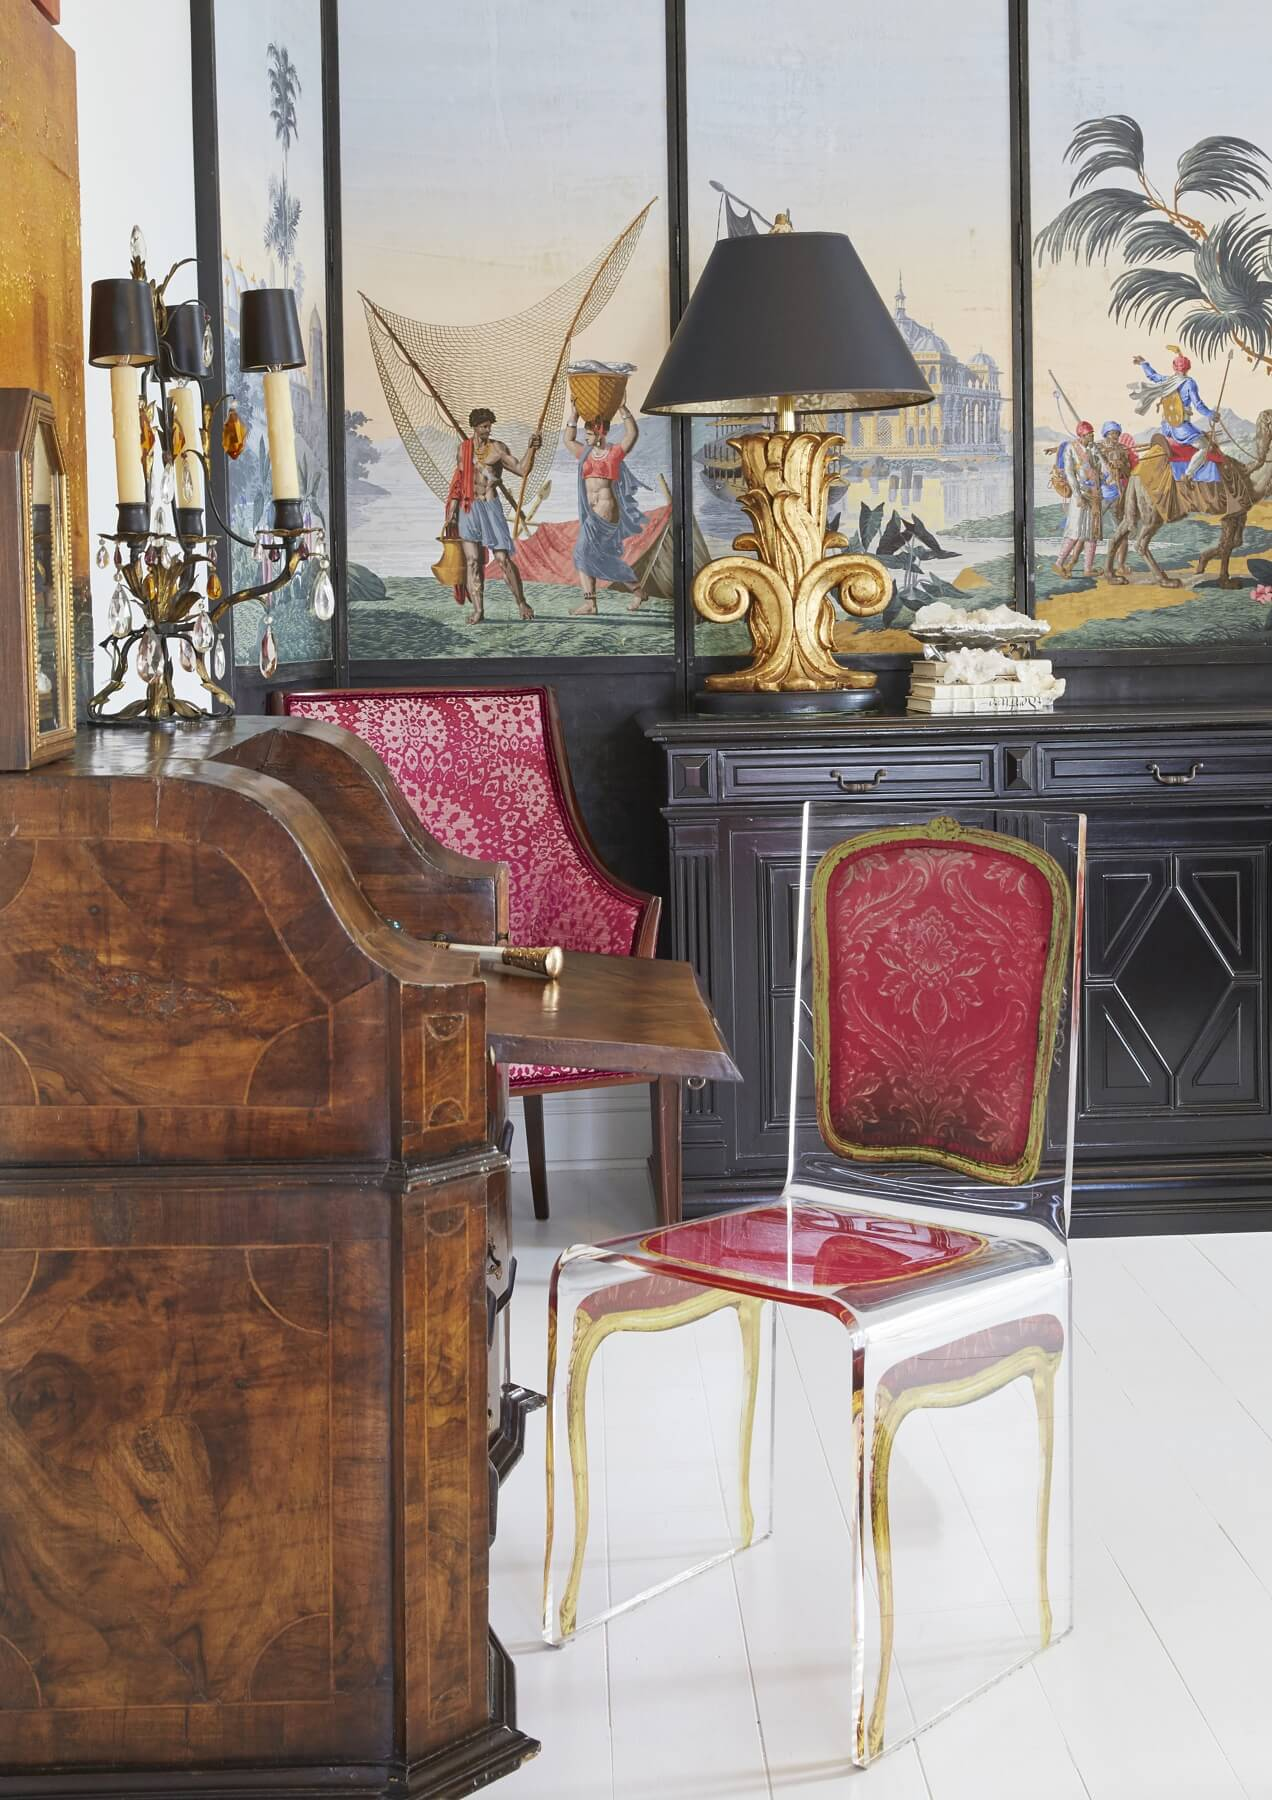 Em found this ghost chair with the image of a pink-upholstered French chair on 1st dibs, and was so delighted with it that she had to have it. In the background, another longtime piece she's always treasured is a 12-foot long French sideboard cabinet, which was once stained brown wood that she updated with glossy black paint.